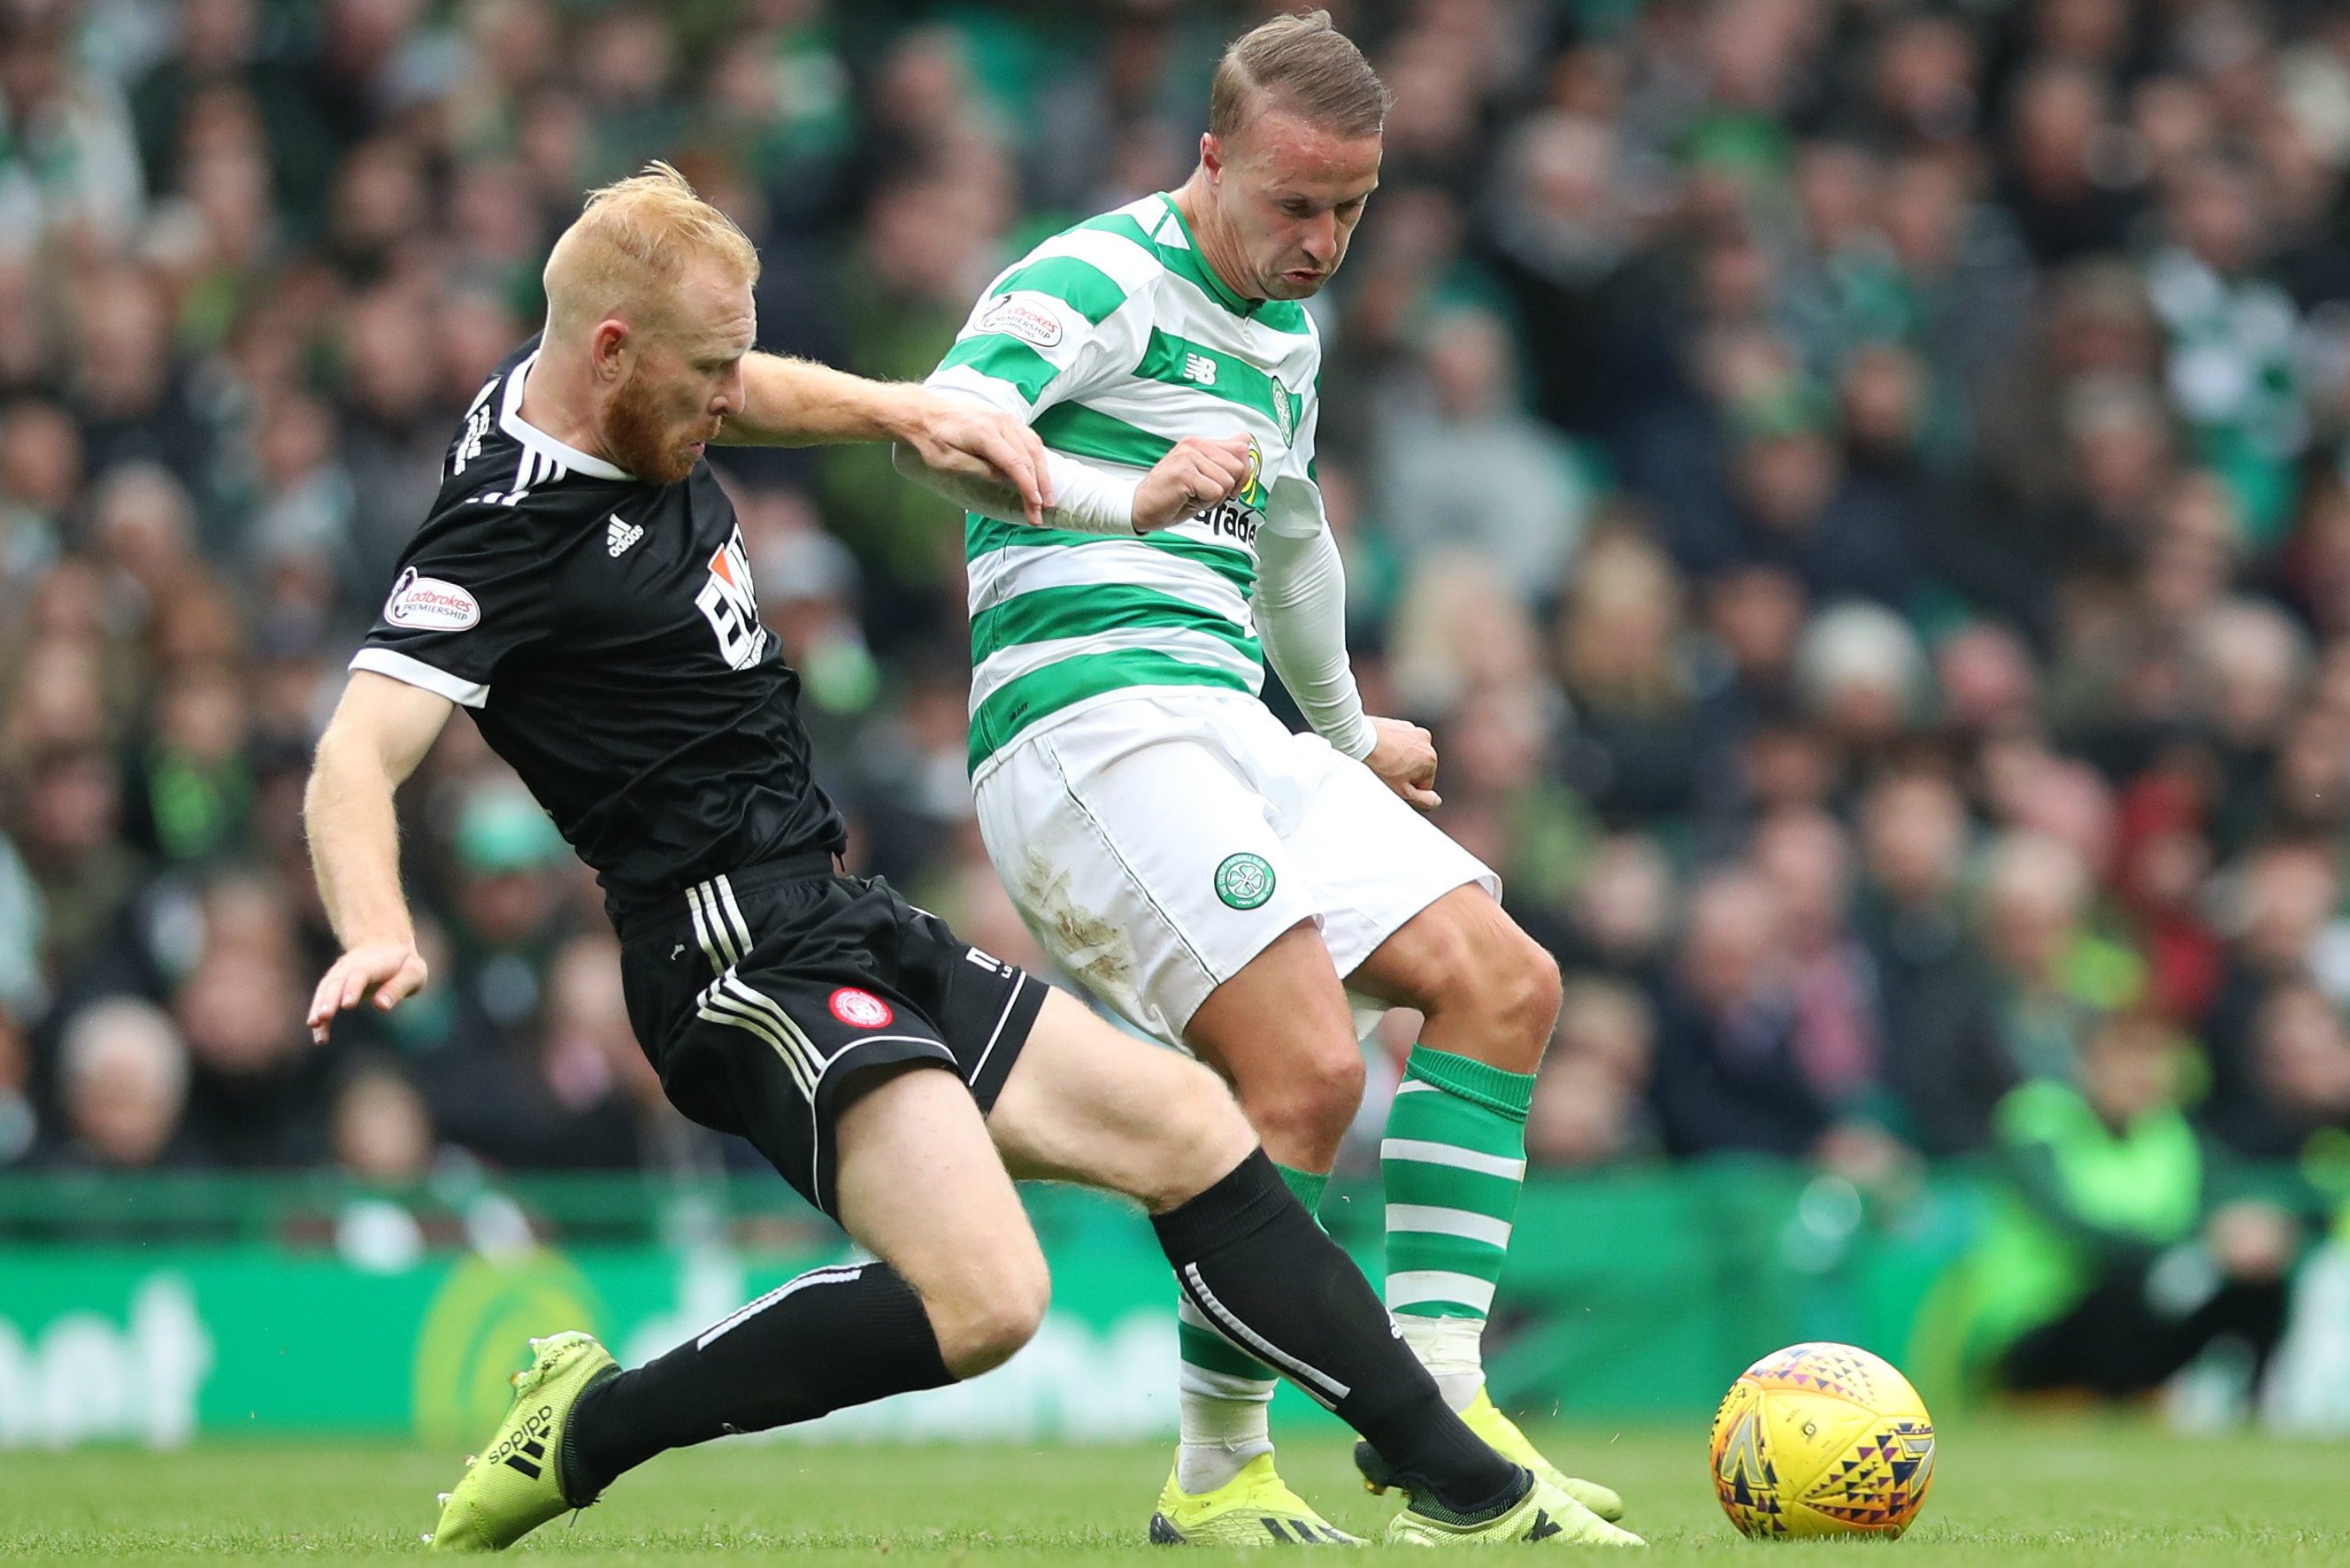 Ziggy Gordon in action against Celtic in the SPL